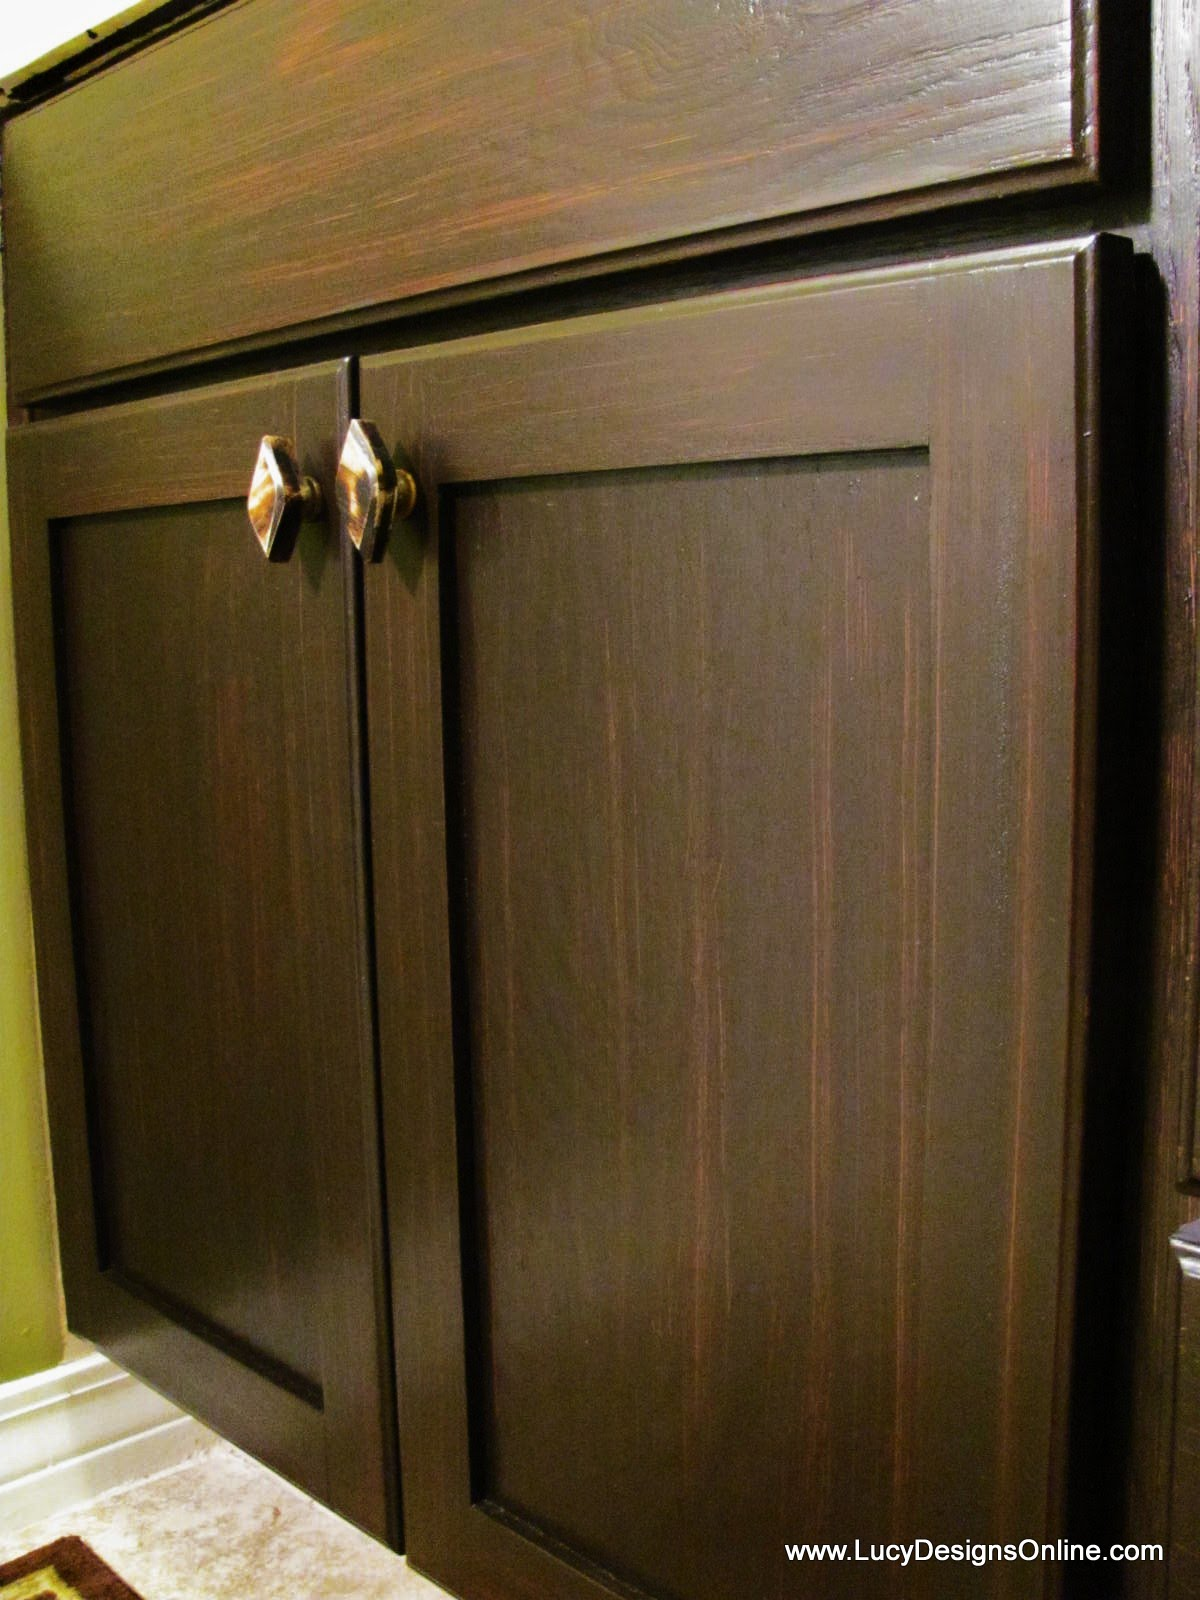 how to use gel stain diy gel stained master bath cabinet makeover lucy designs - Cabinet Stain